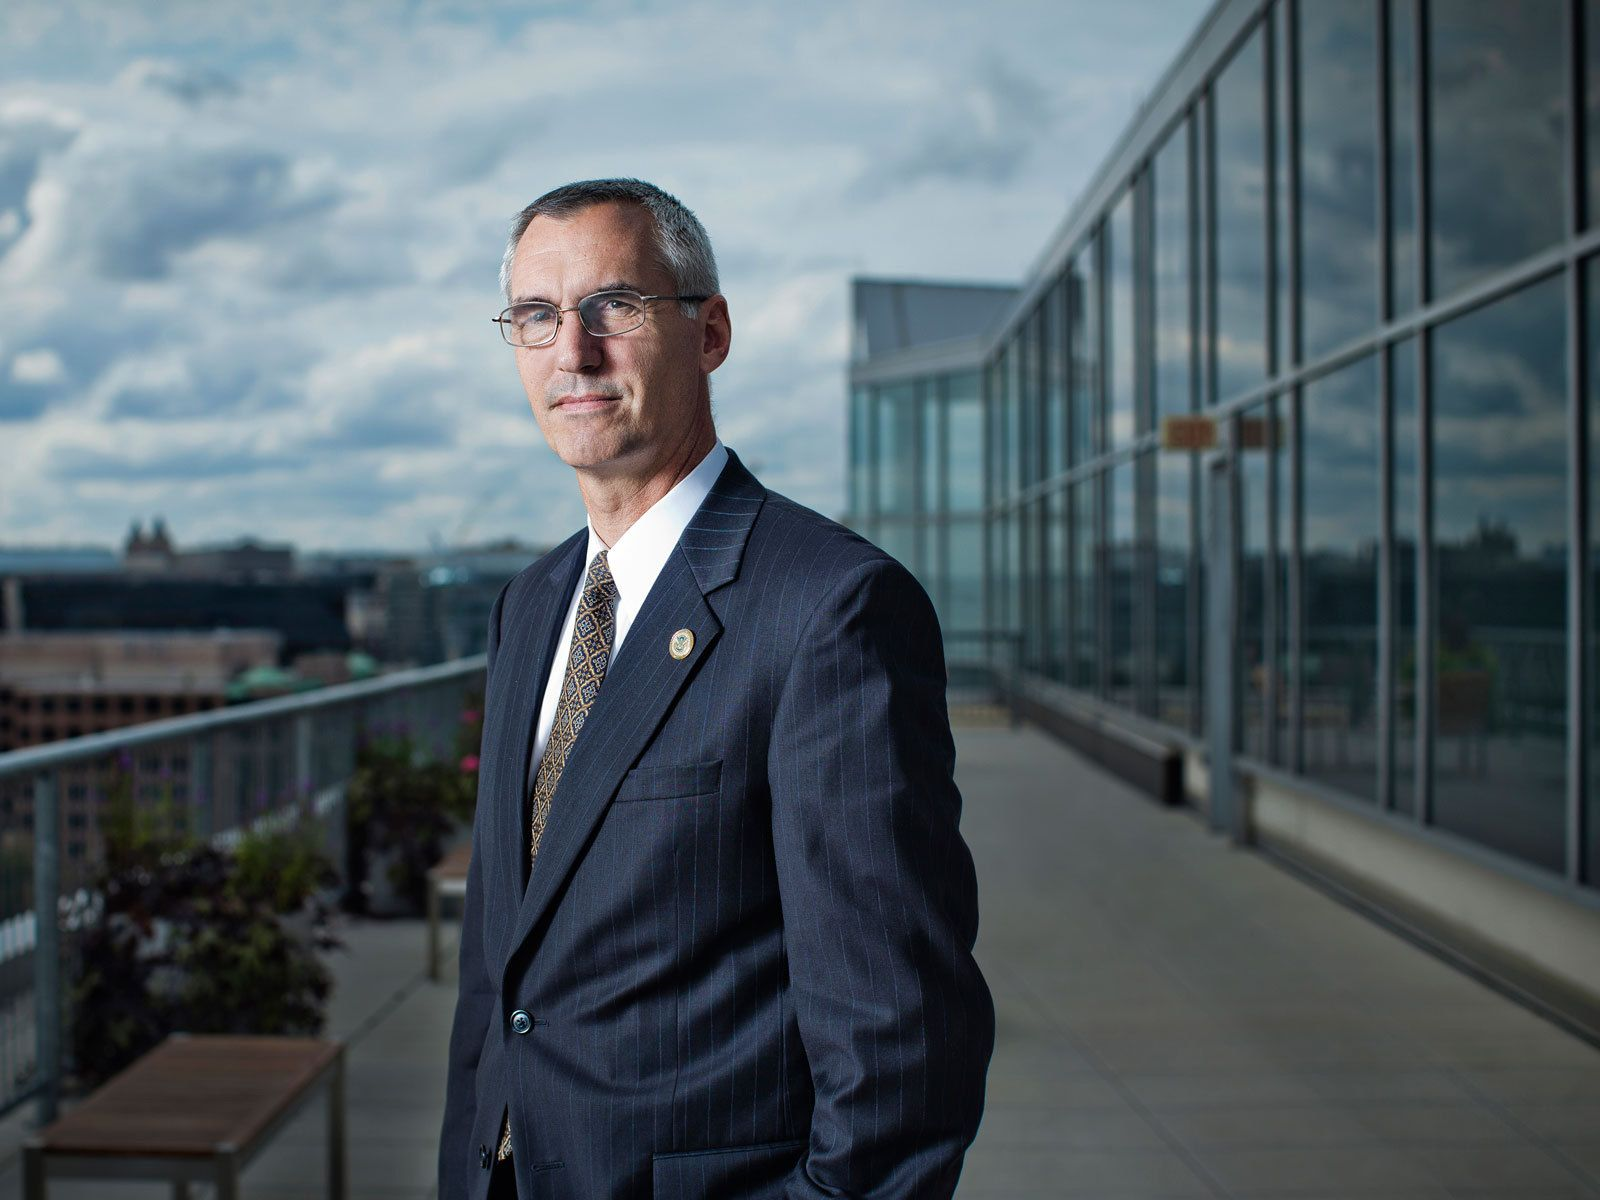 Richard Spires, Chief Information Officer-   US Department of Homeland Security on the rooftop of the Homeland Security offices overlooking Washington, DC